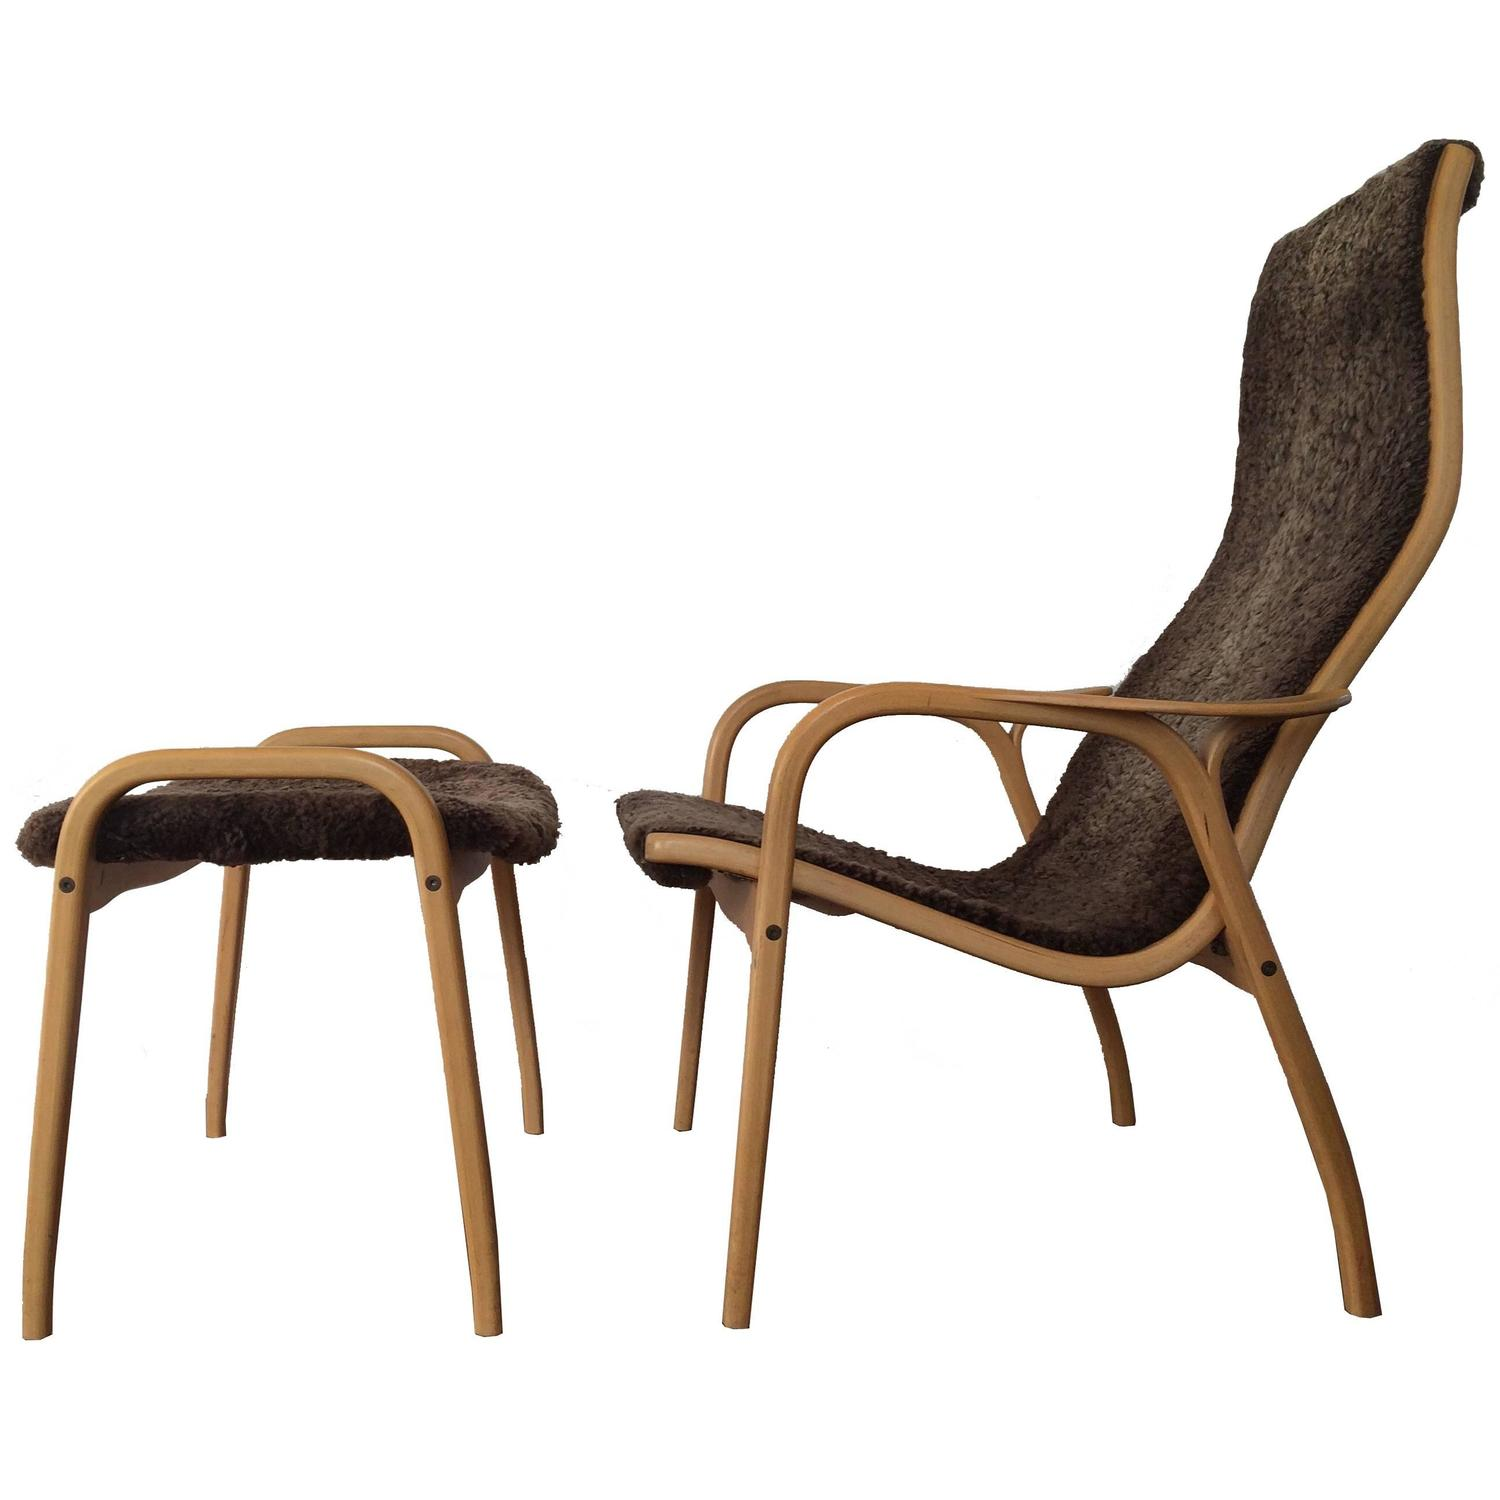 Yngve Ekström Lamino Chair and Ottoman for Swedese Mobler at 1stdibs